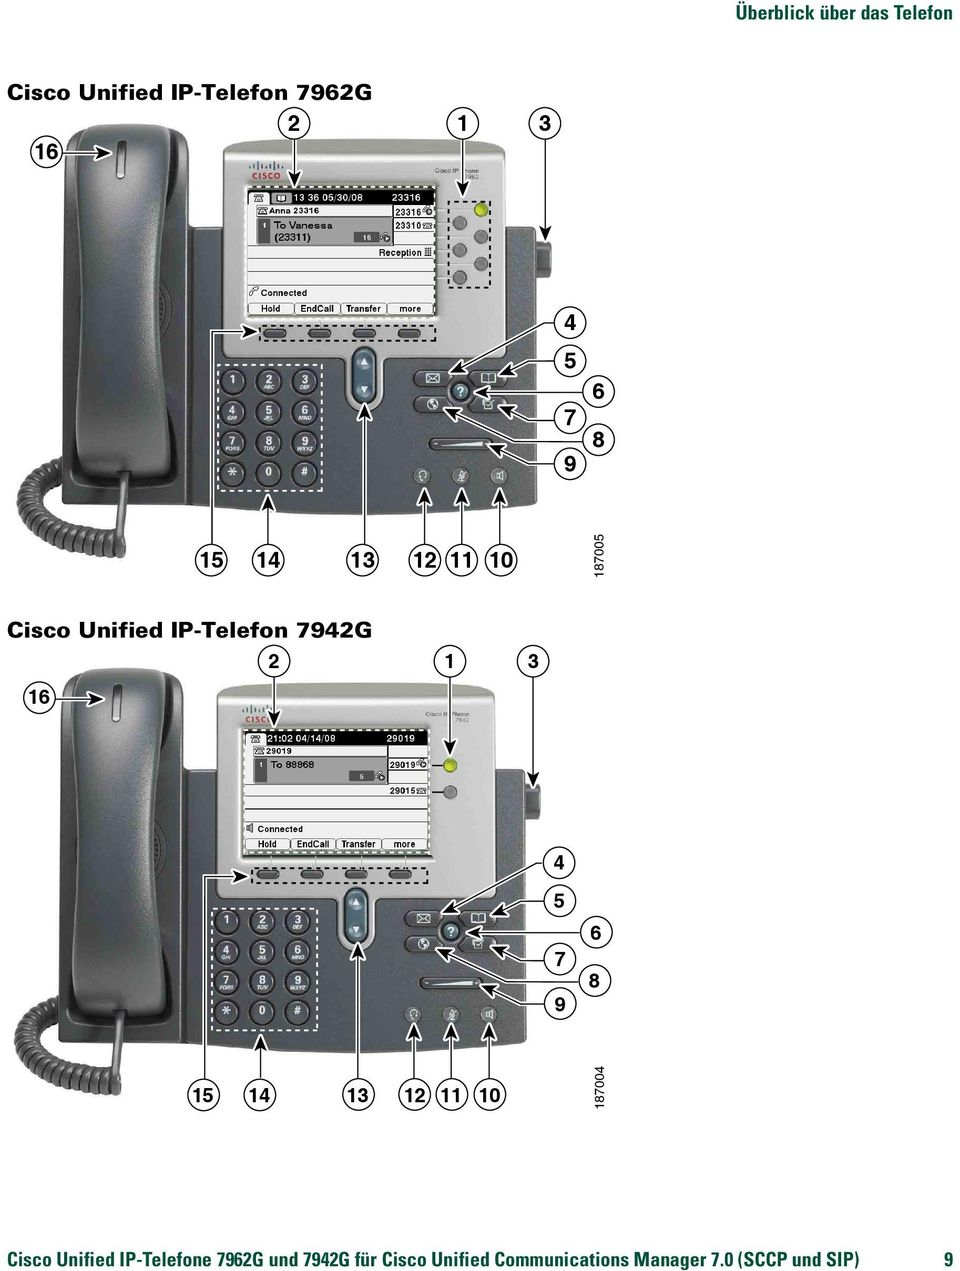 16 4 5 7 9 6 8 15 14 13 12 11 10 187004 Cisco Unified IP-Telefone